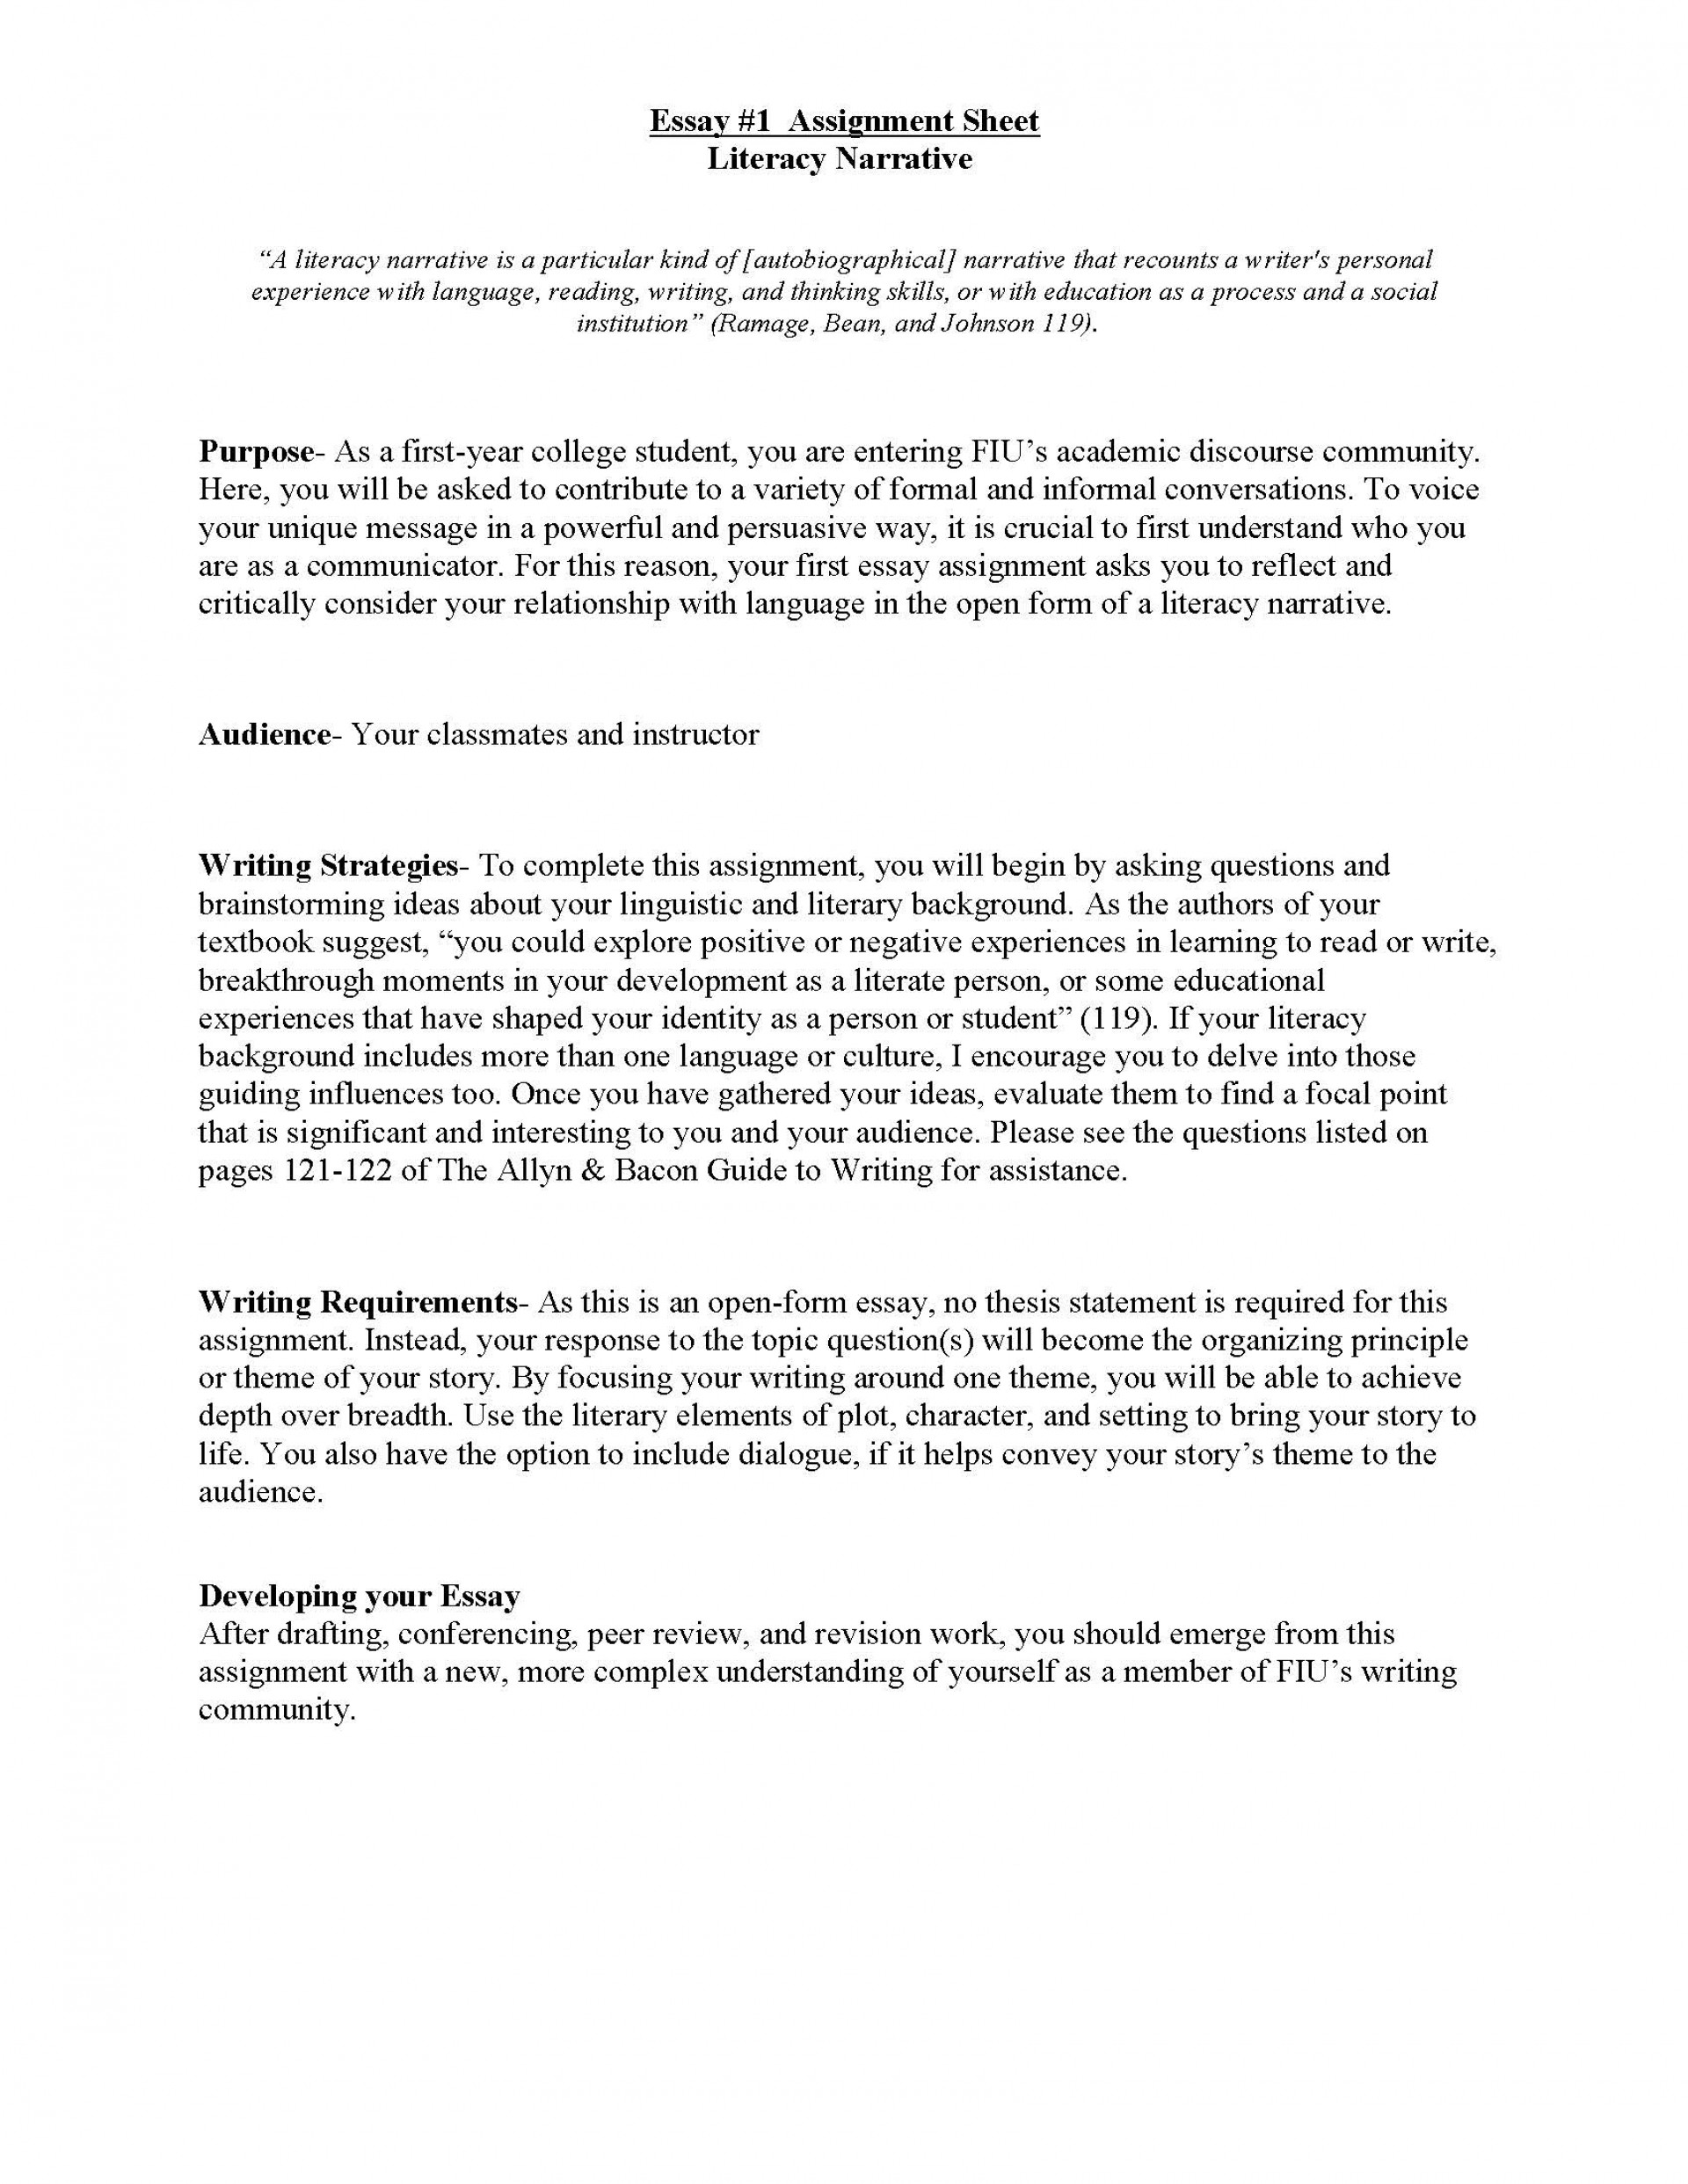 010 Essay Example Examples Of Narrative Literacy Unit Assignment Spring 2012 Page 1 Fascinating A In Third Person Apa Format 8th Grade Personal Essays 1920